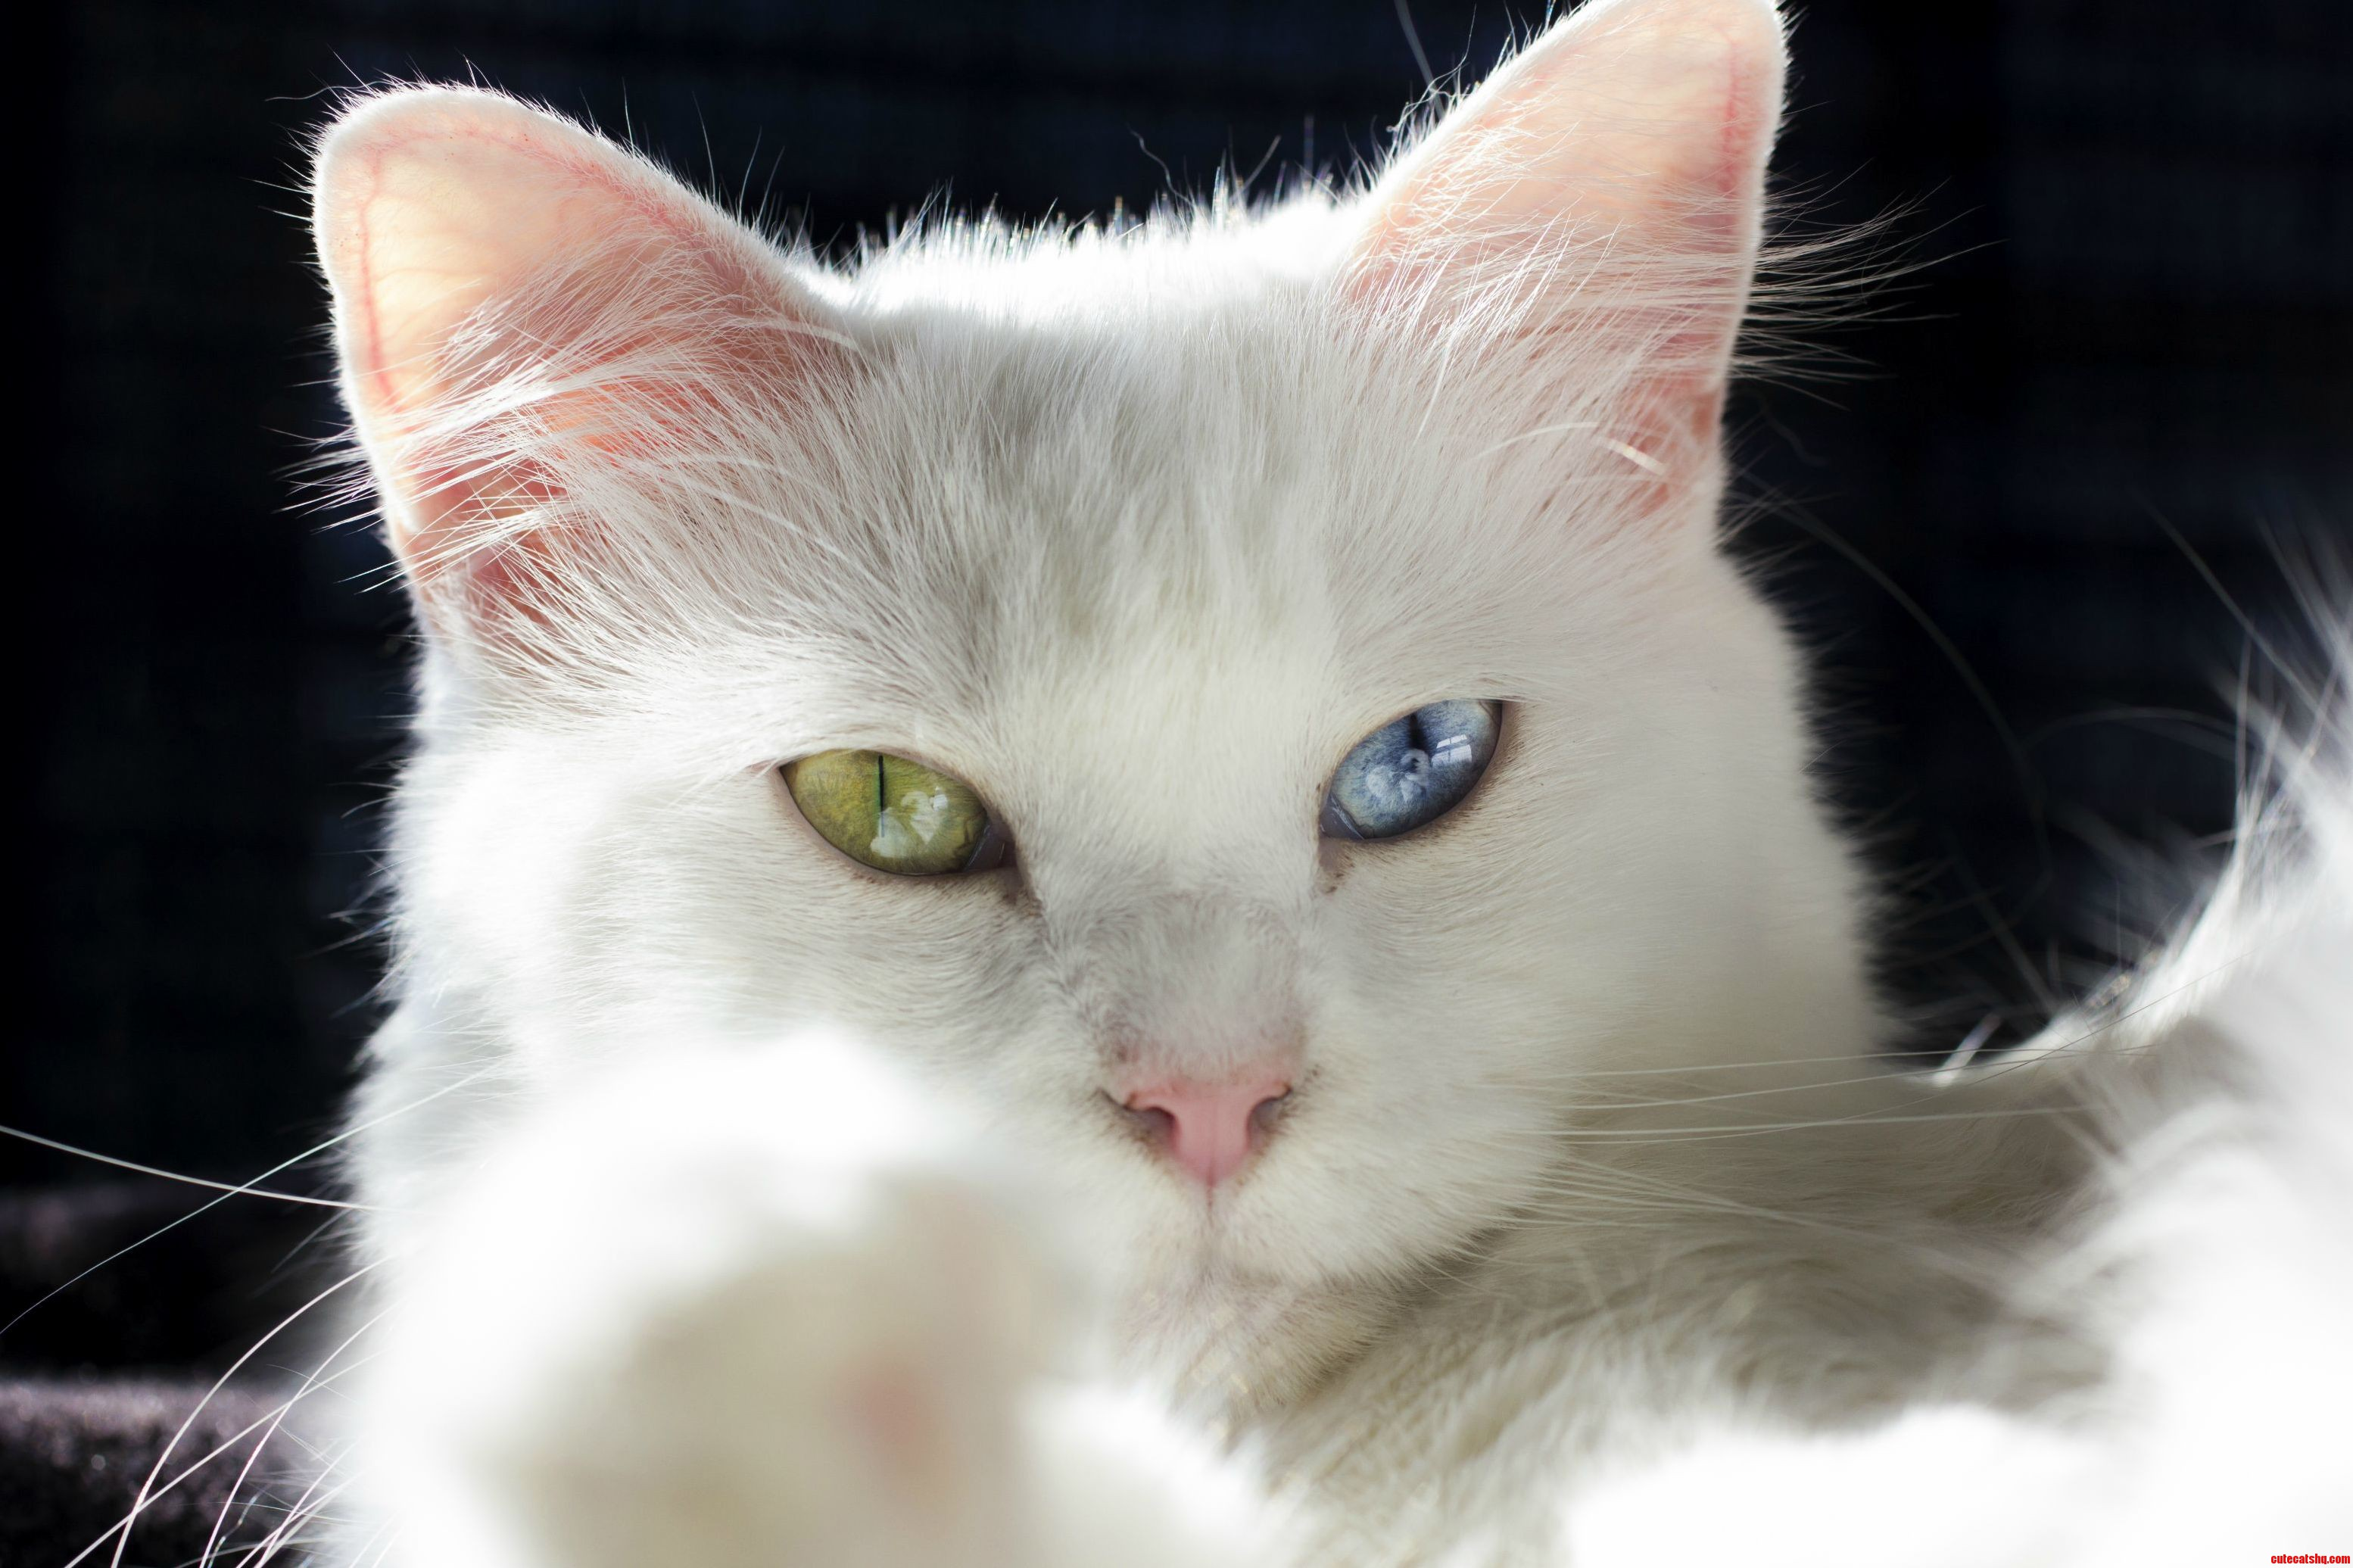 Cute Cats And Kittens Heterochromia Iridum Two Different